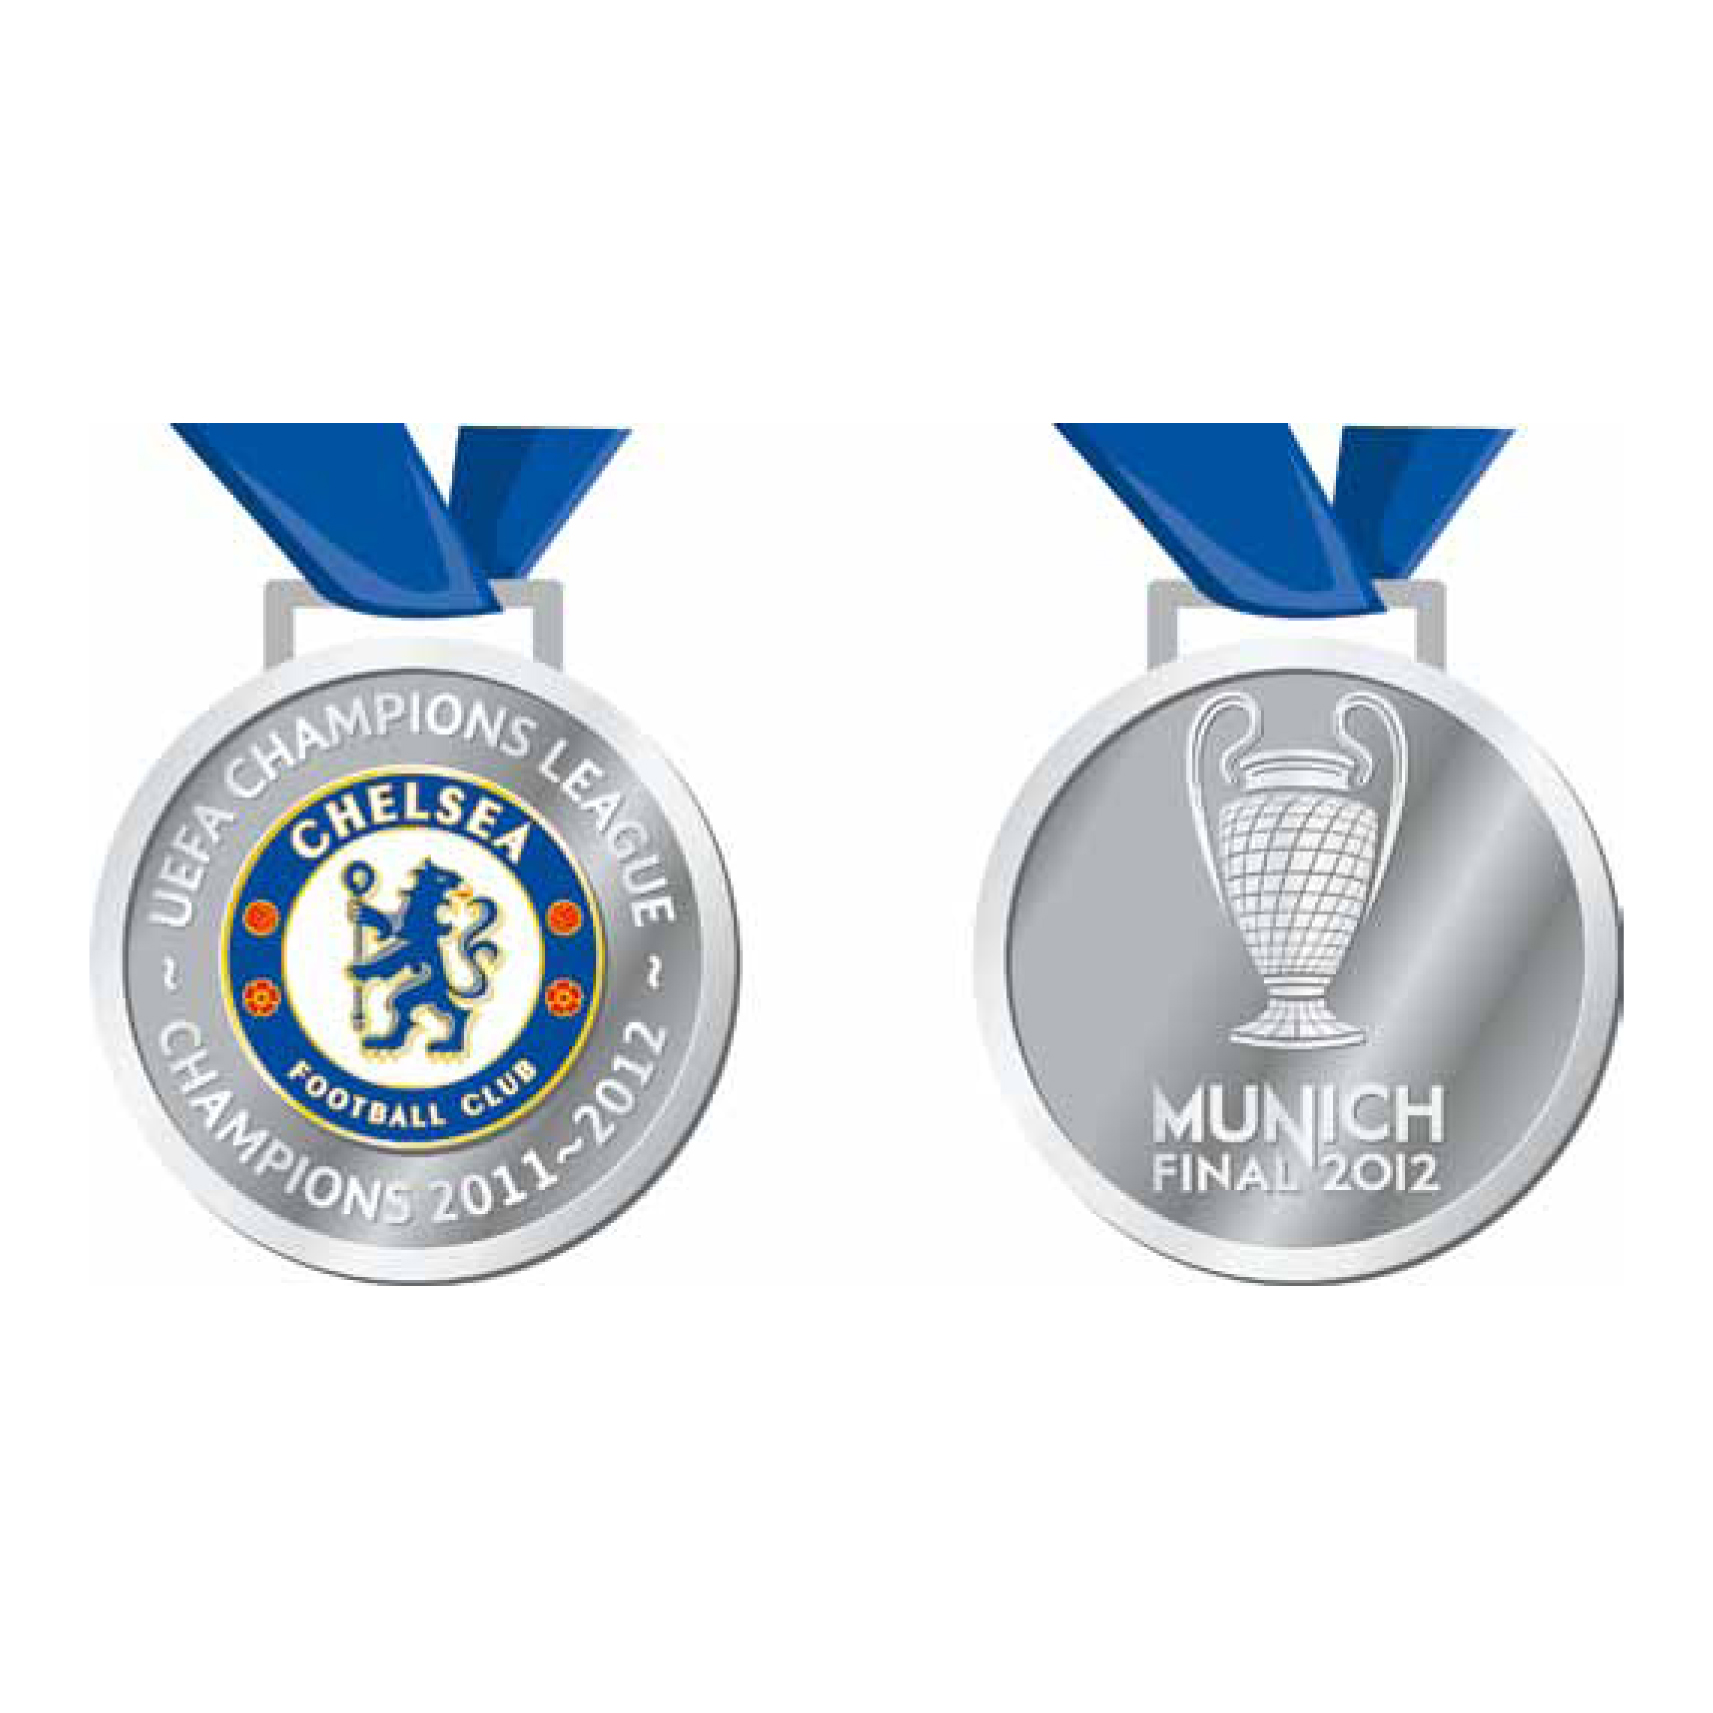 Chelsea EUROPA League 2013 Winners Medal